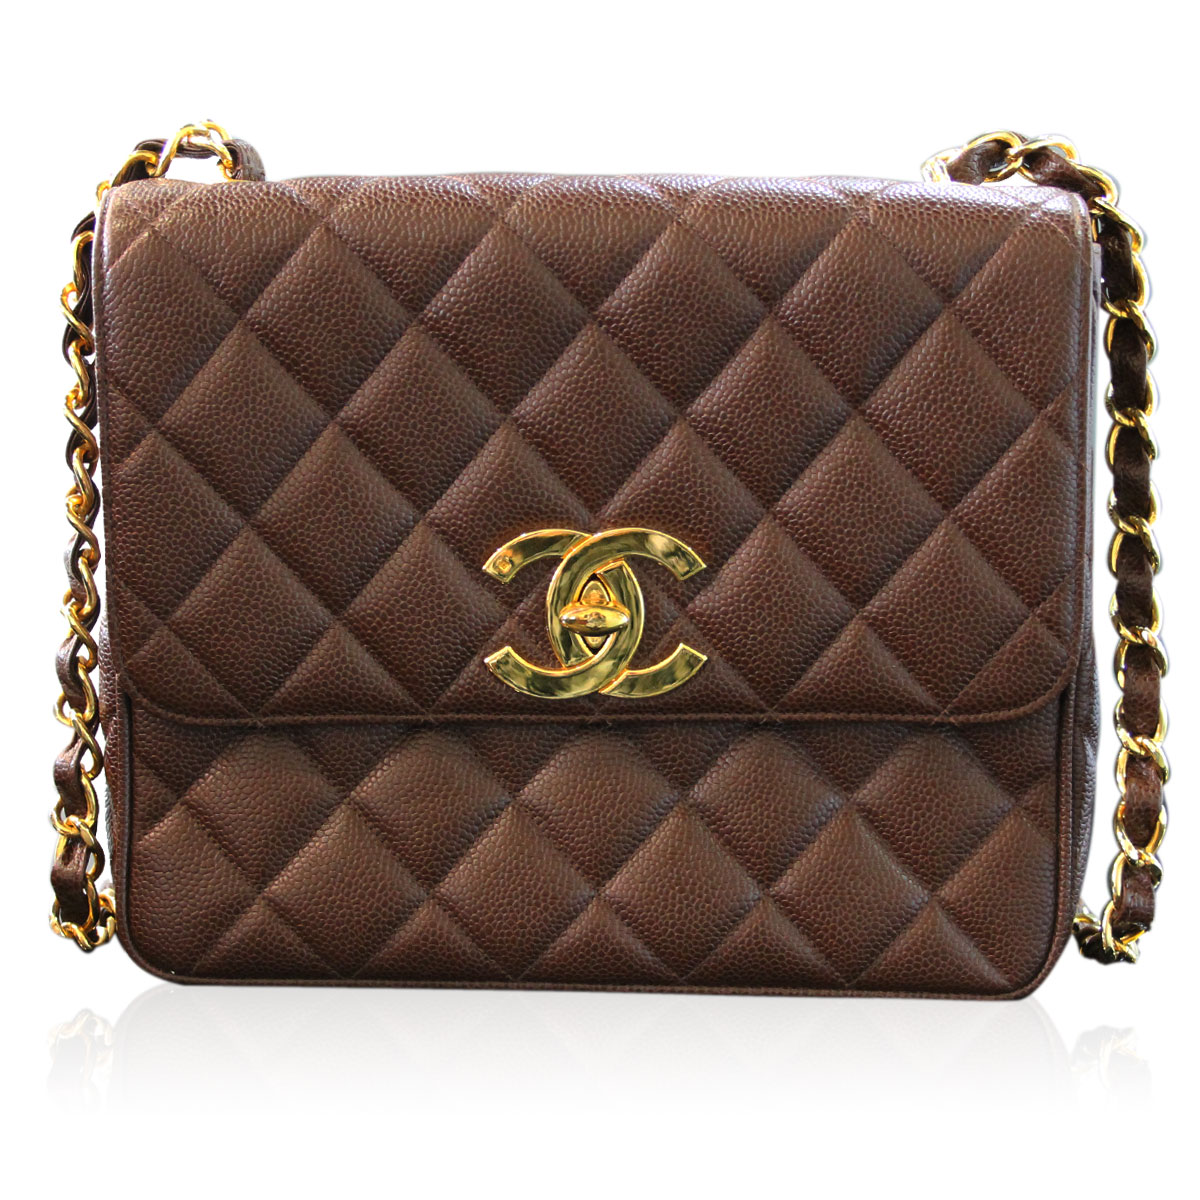 8d10019425a4 Where To Sell Vintage Chanel Bag | Stanford Center for Opportunity ...